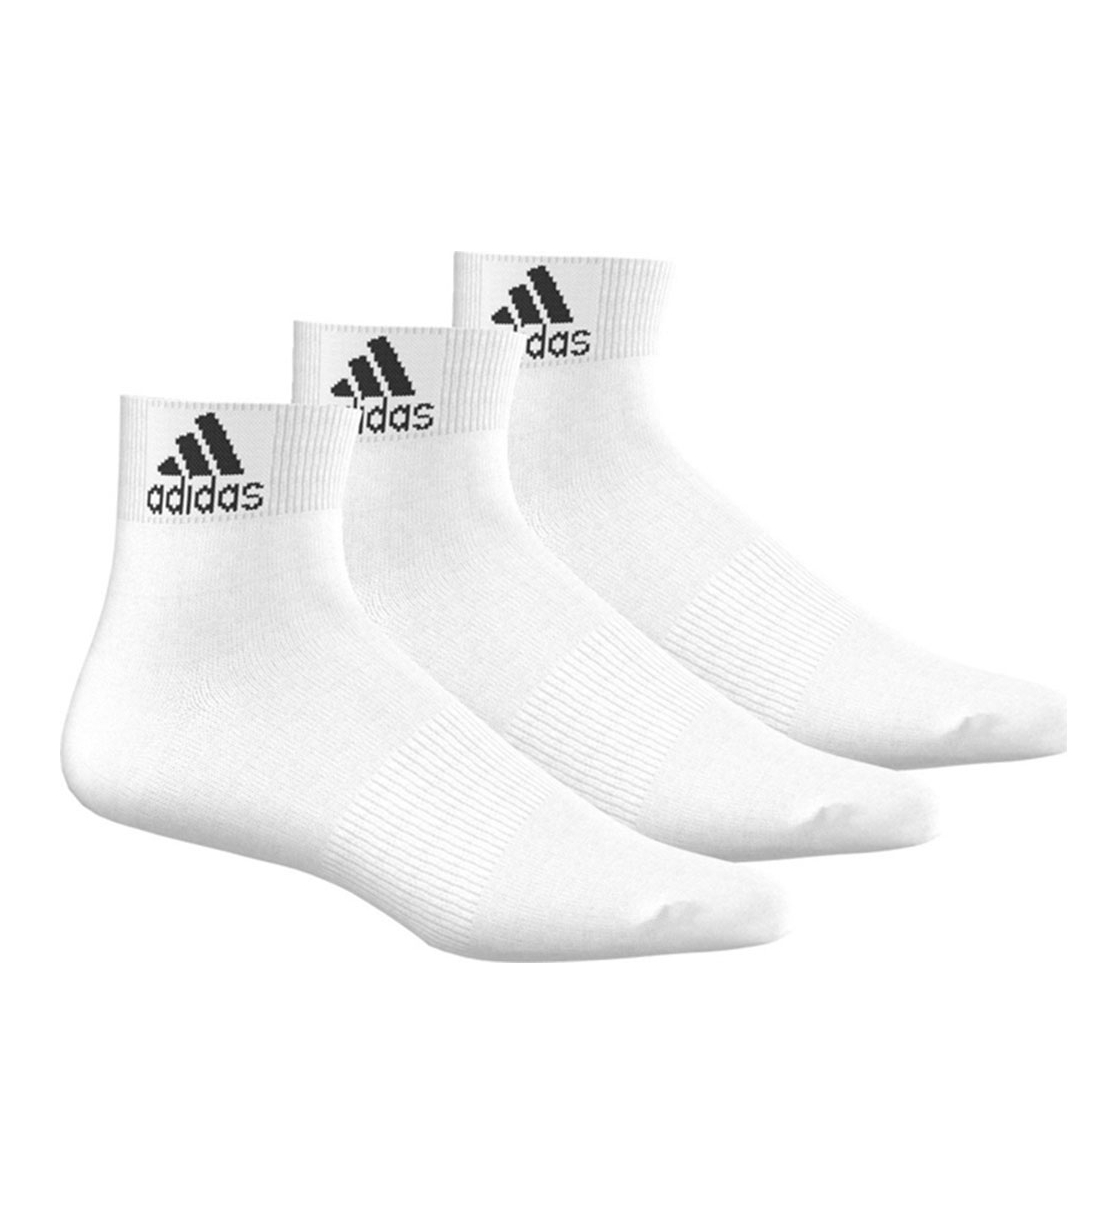 Adidas Ss19 Performance Thin Ankle Socks (3 Pairs Pack)